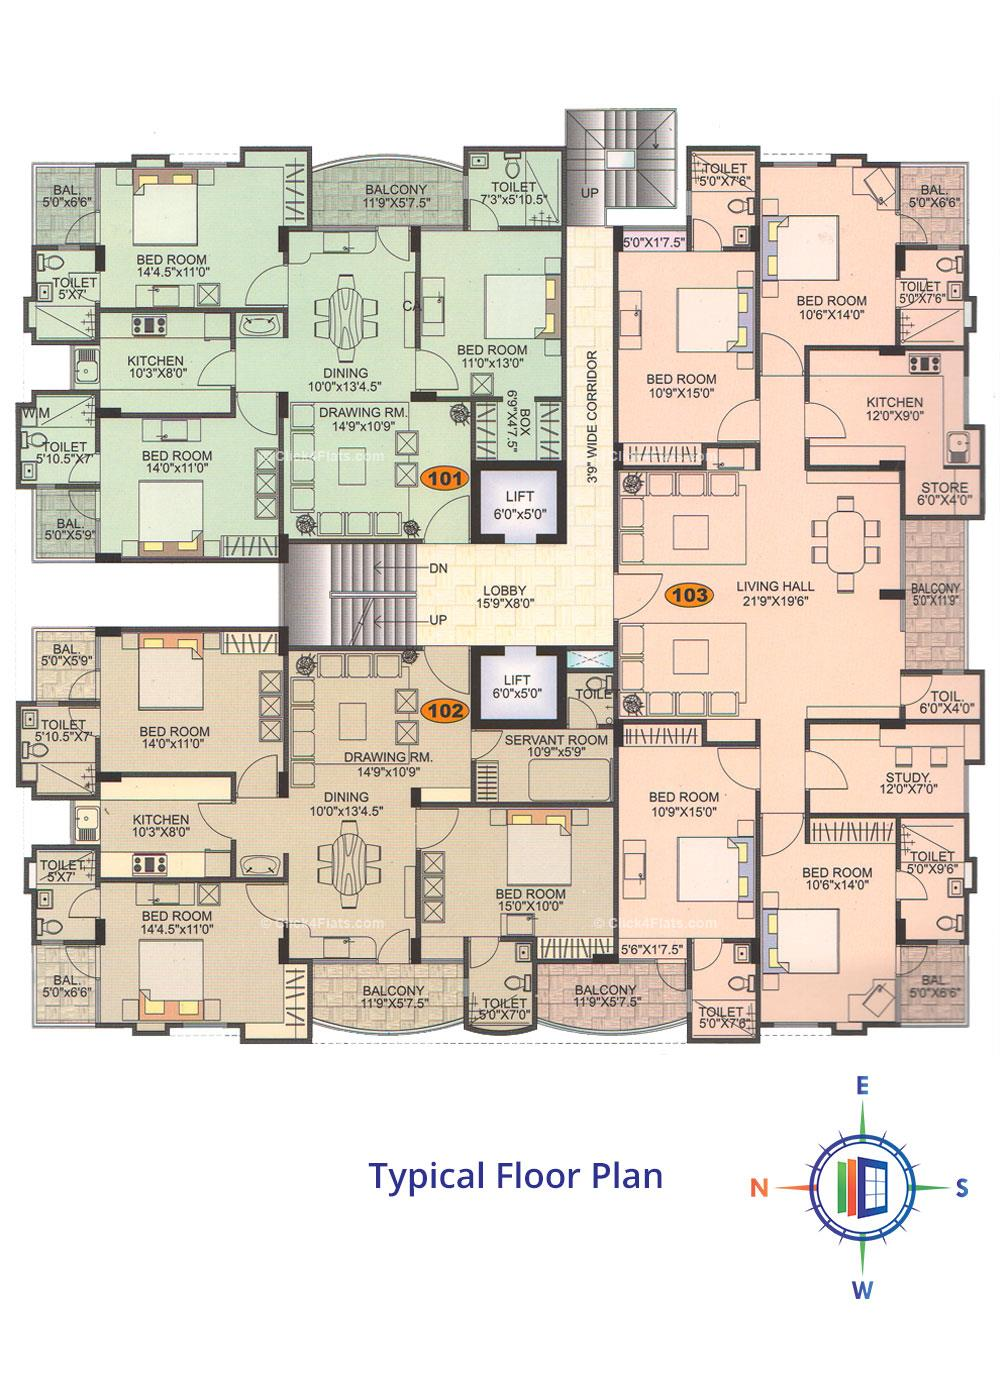 Emerald Akshita Typical Floor Plan